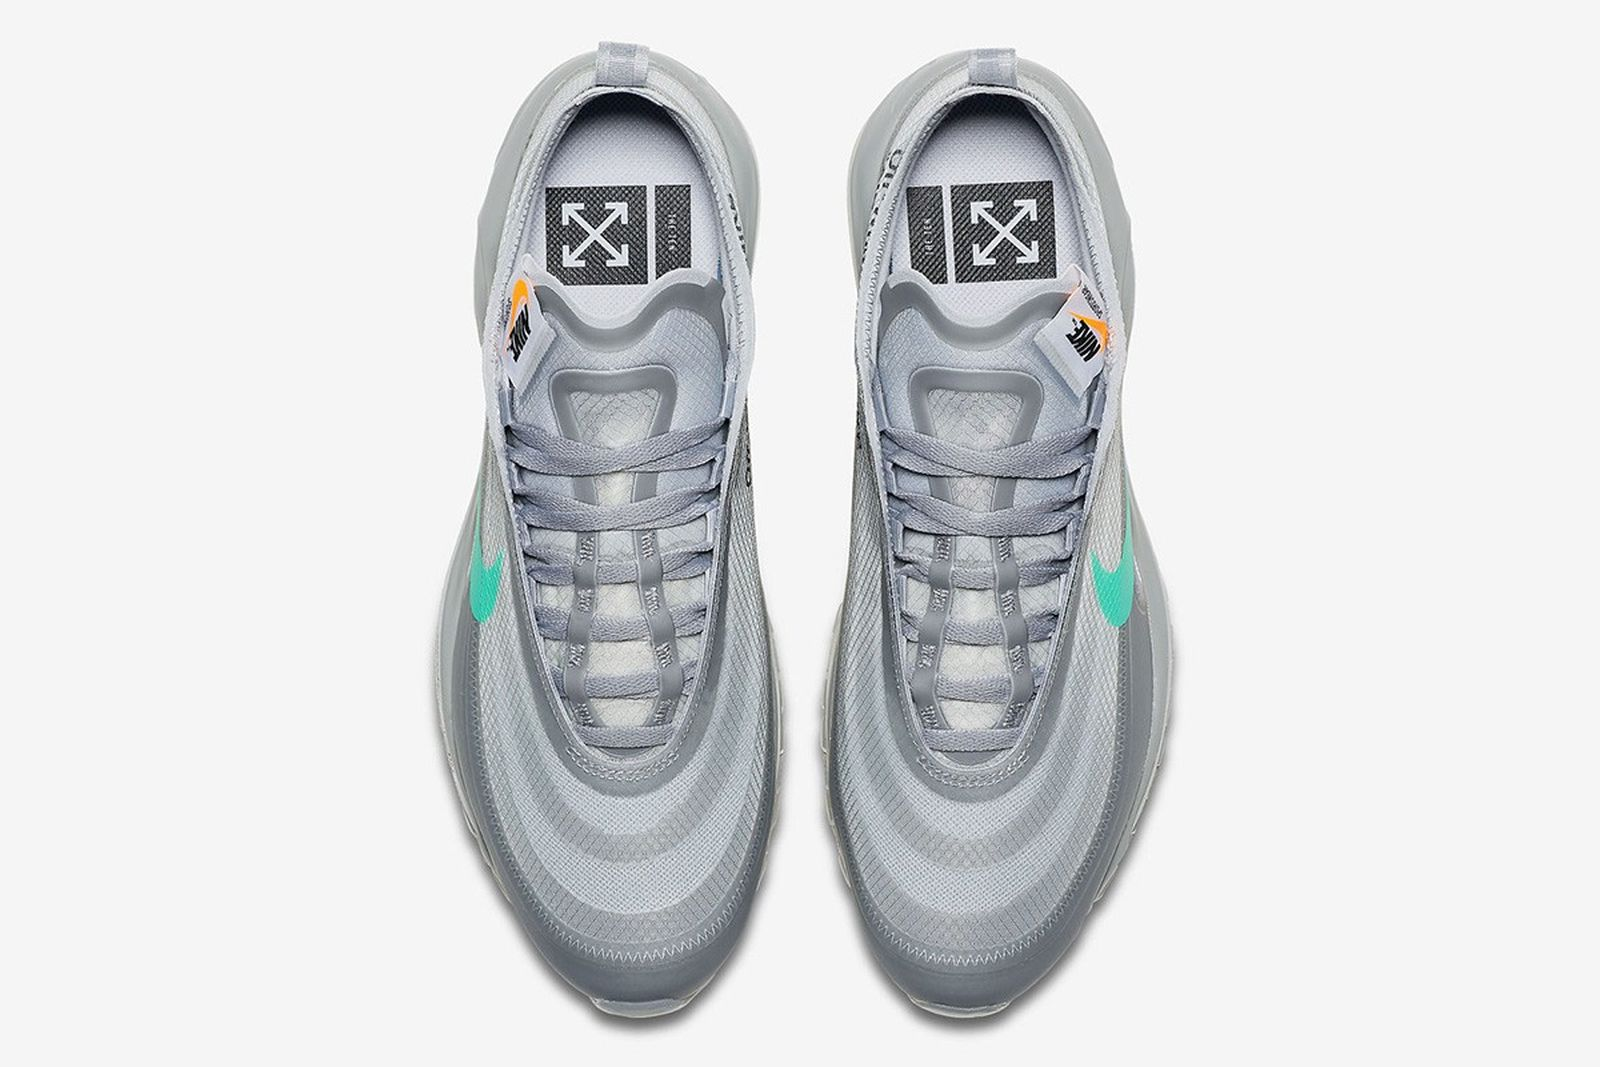 off-white-nike-air-max-97-menta-release-date-price-01